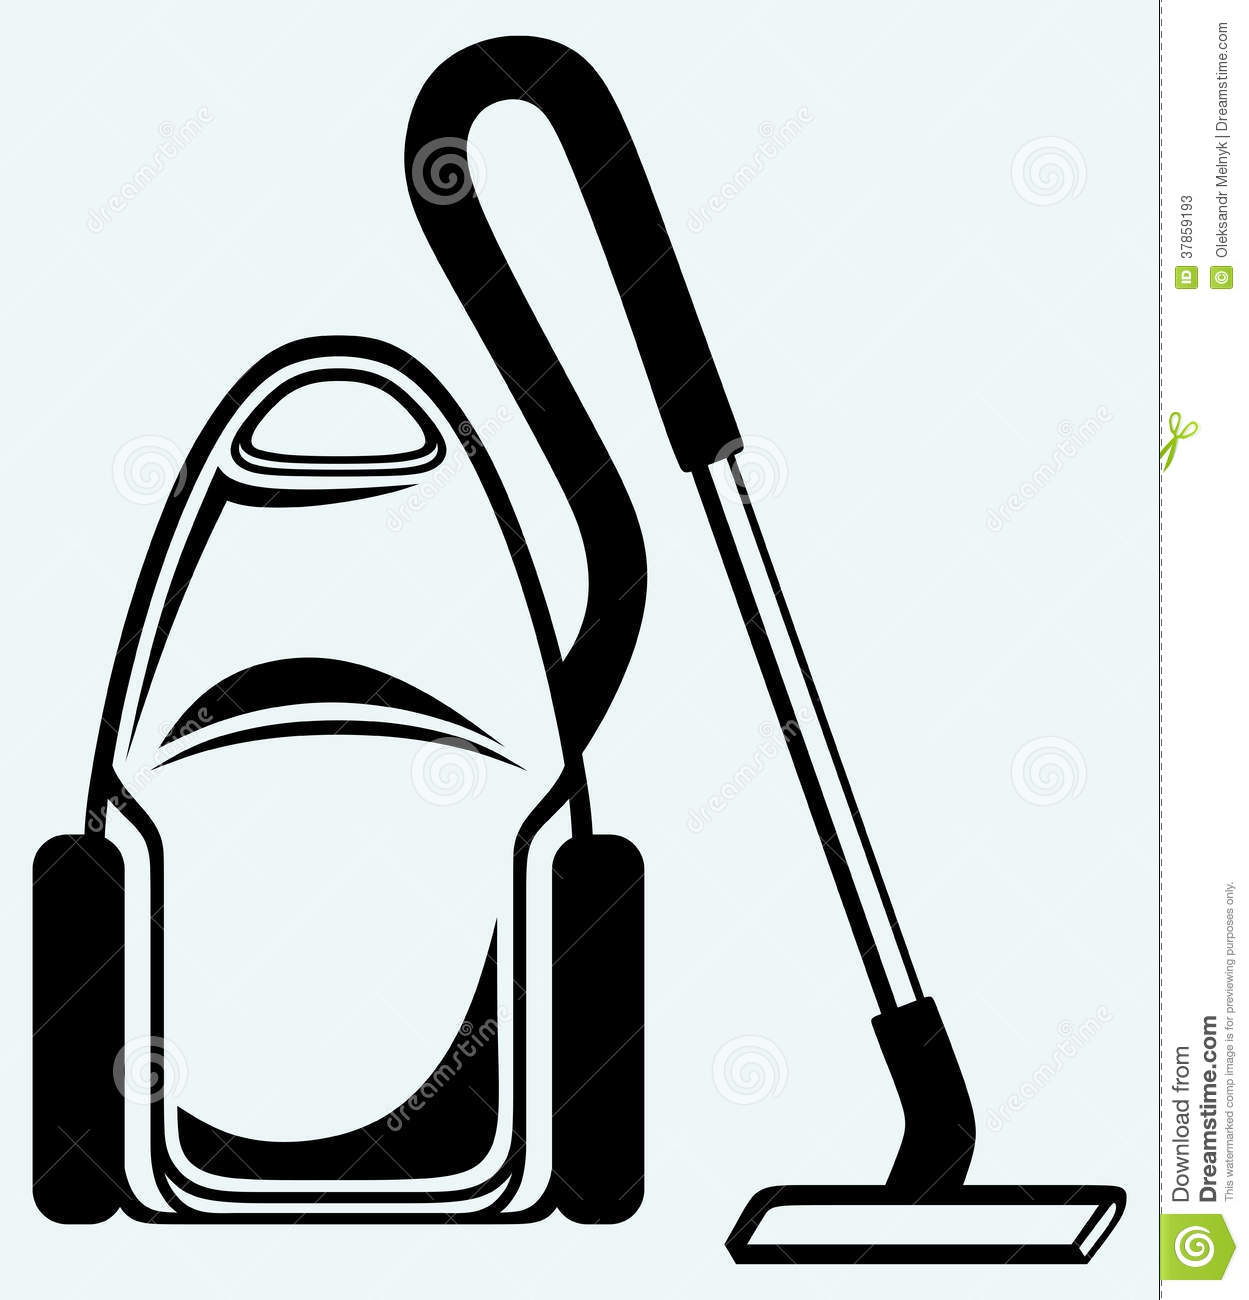 Vacuum cleaner clipart vacuum cleaner clip art - Background Cleaner Image Isolated Vacuum